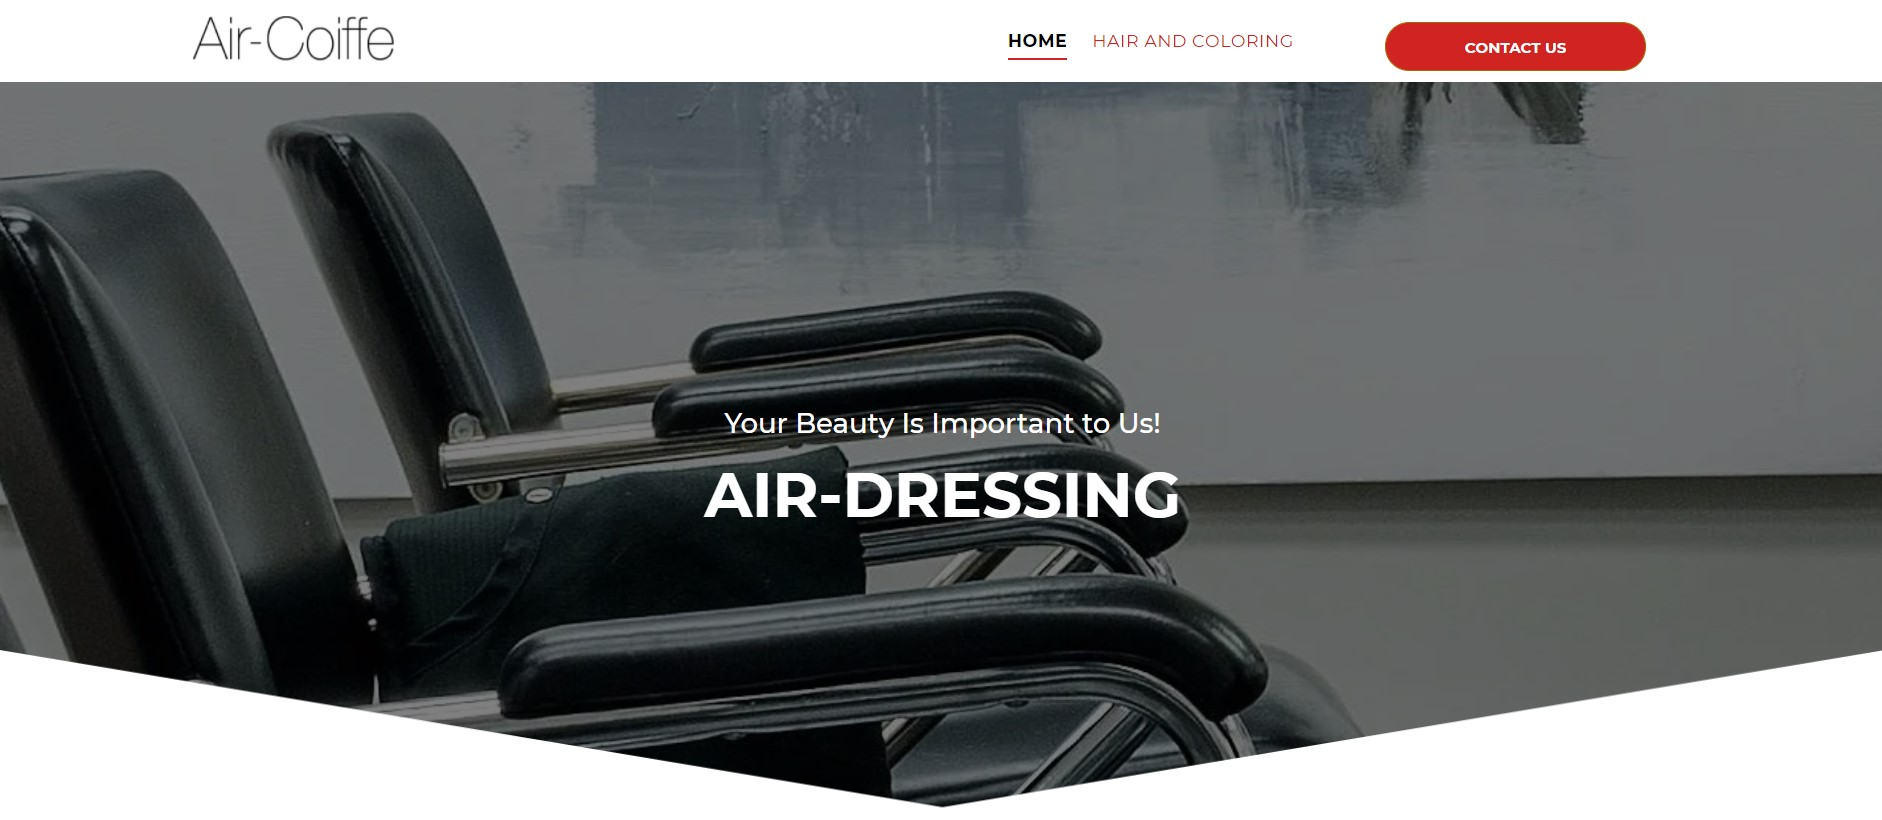 air-coiffe beauty salon in quebec